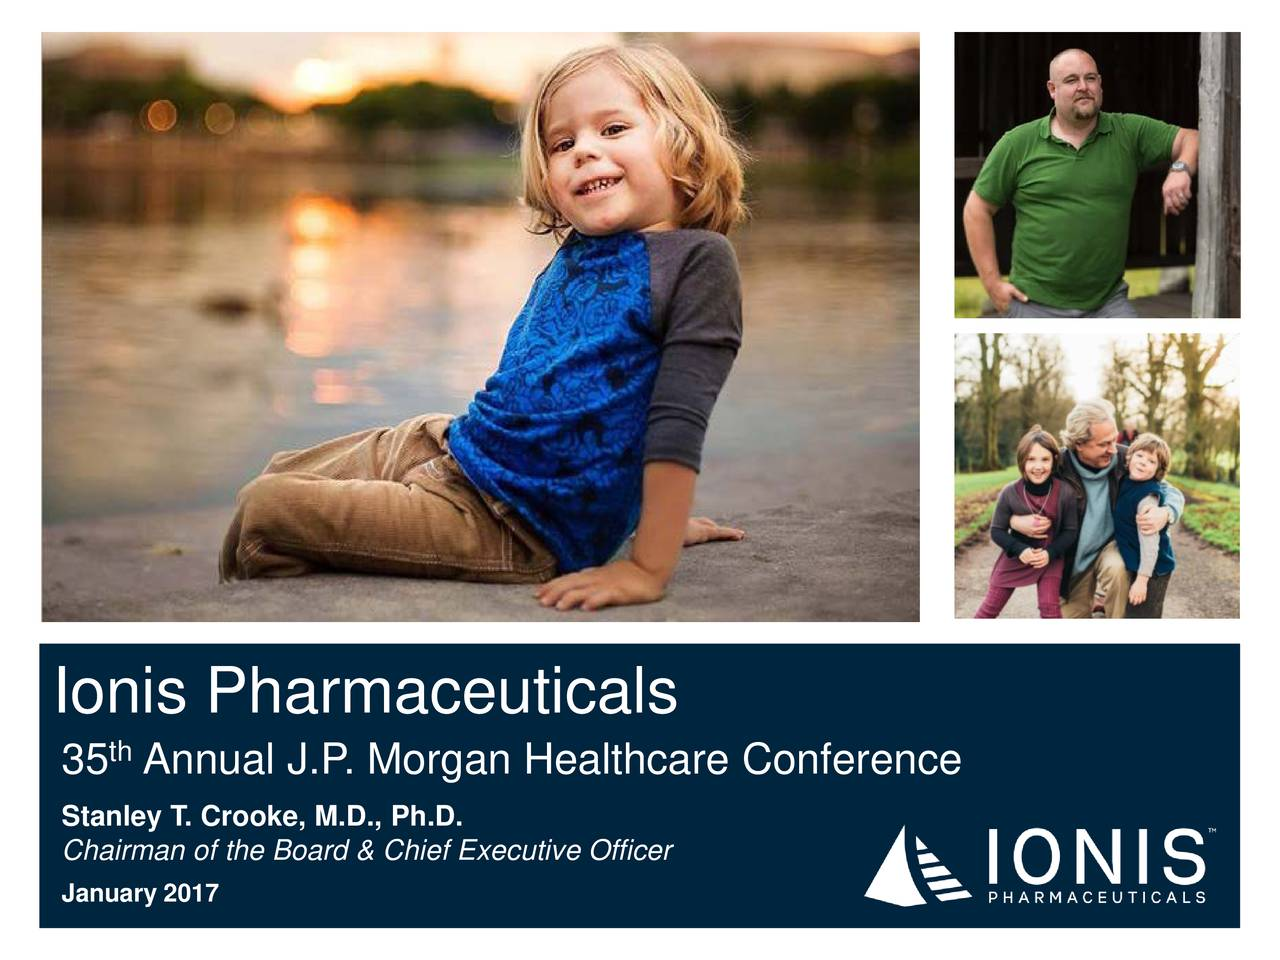 35 Annual J.P . Morgan Healthcare Conference Stanley T. Crooke, M.D., Ph.D. Chairman of the Board & Chief Executive Officer January 2017